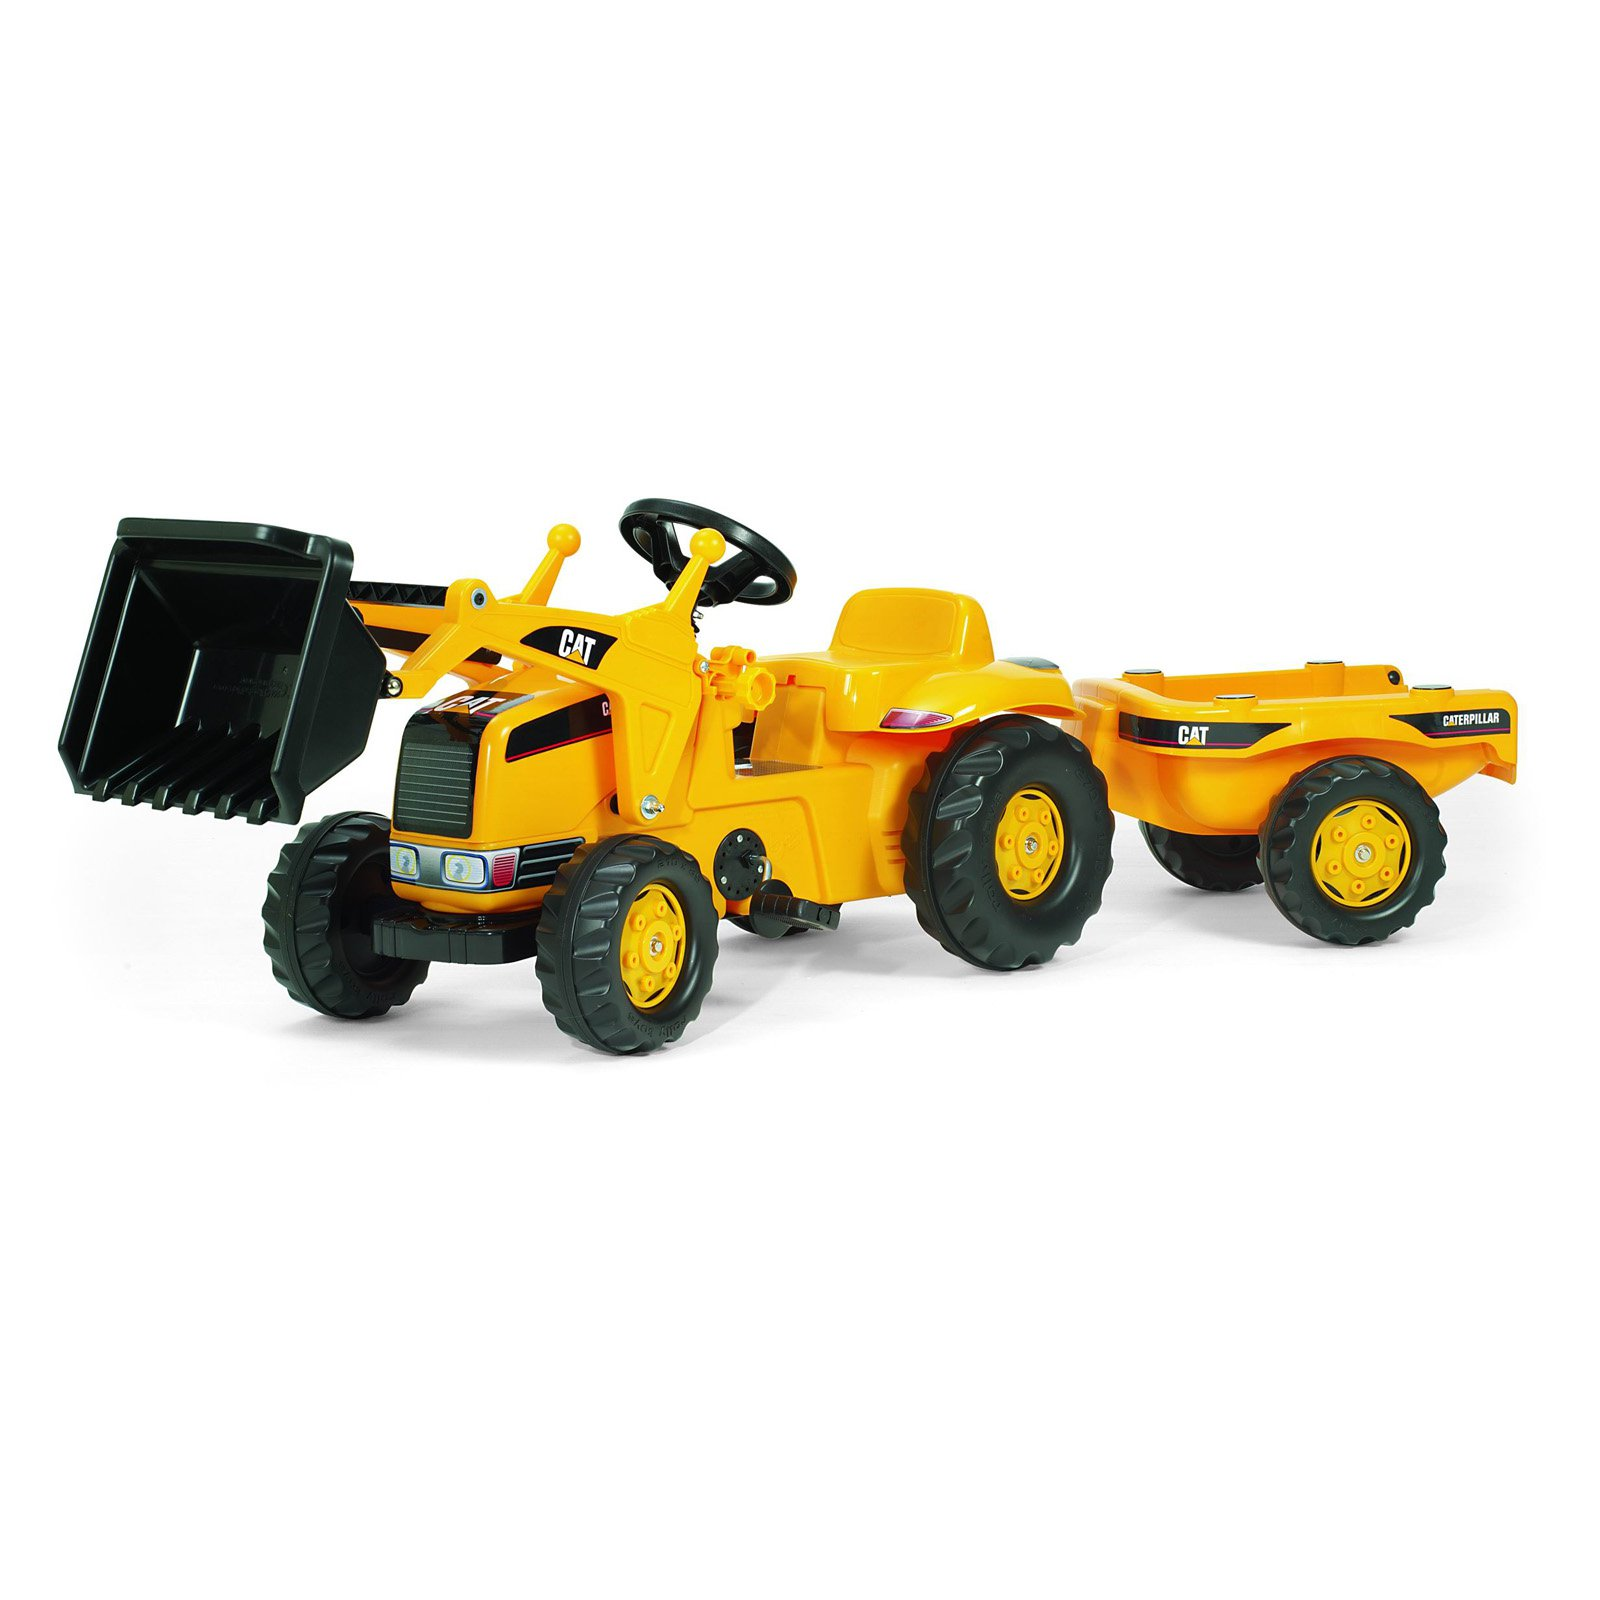 Rolly CAT Kid Tractor with Trailer by Kettler